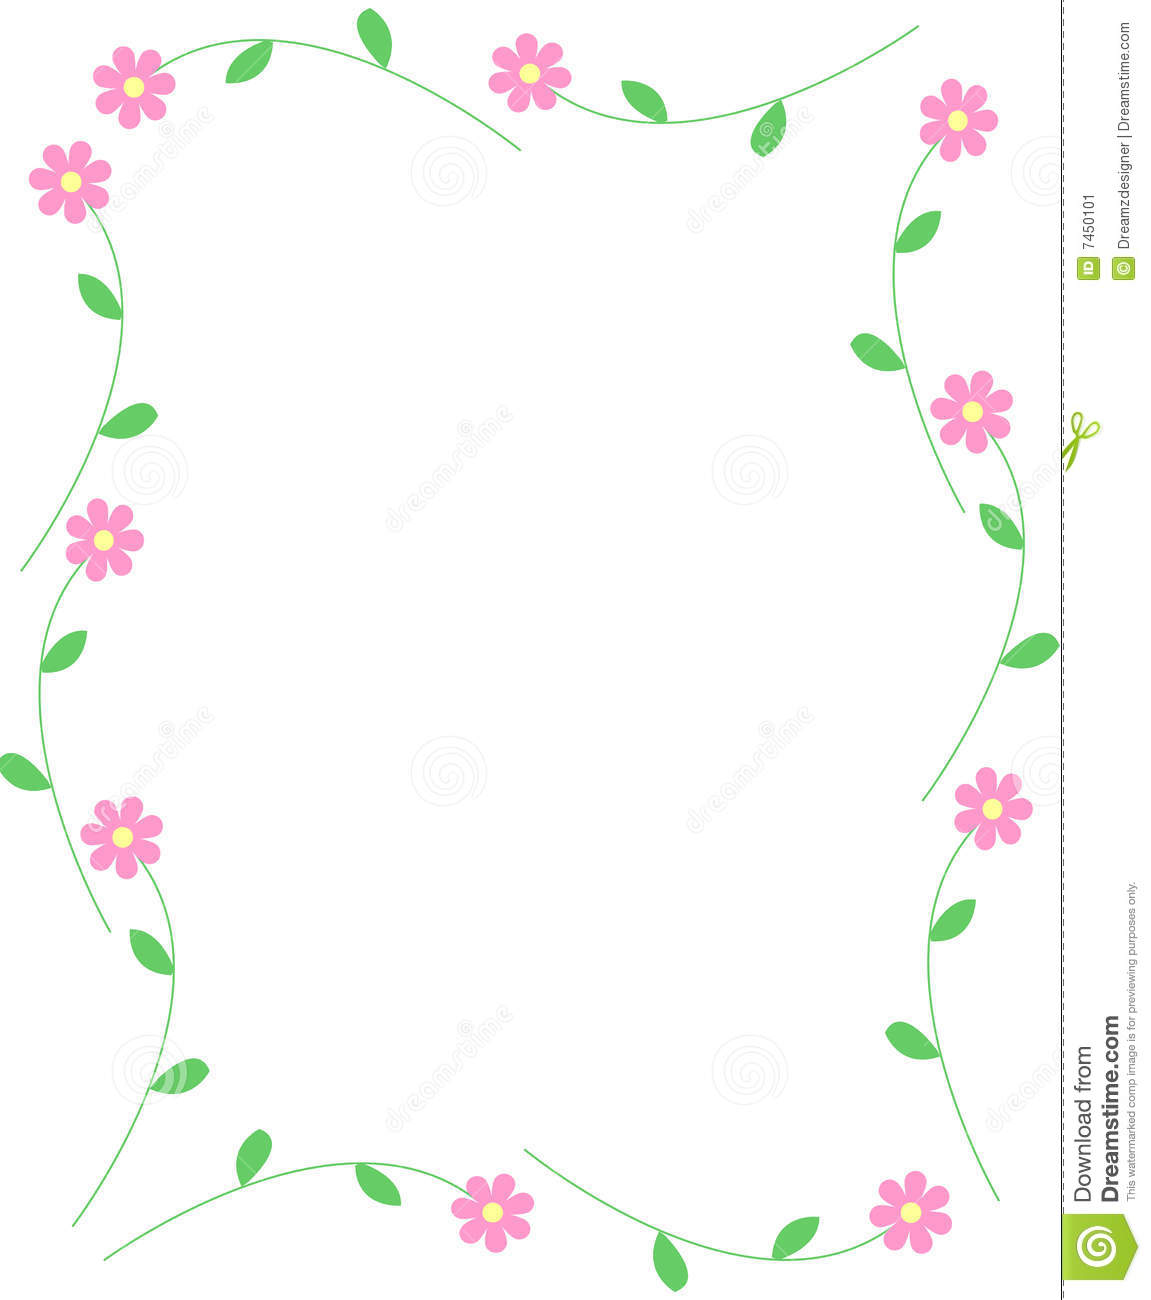 Spring Flowers Border Stock Image - Image: 7450101